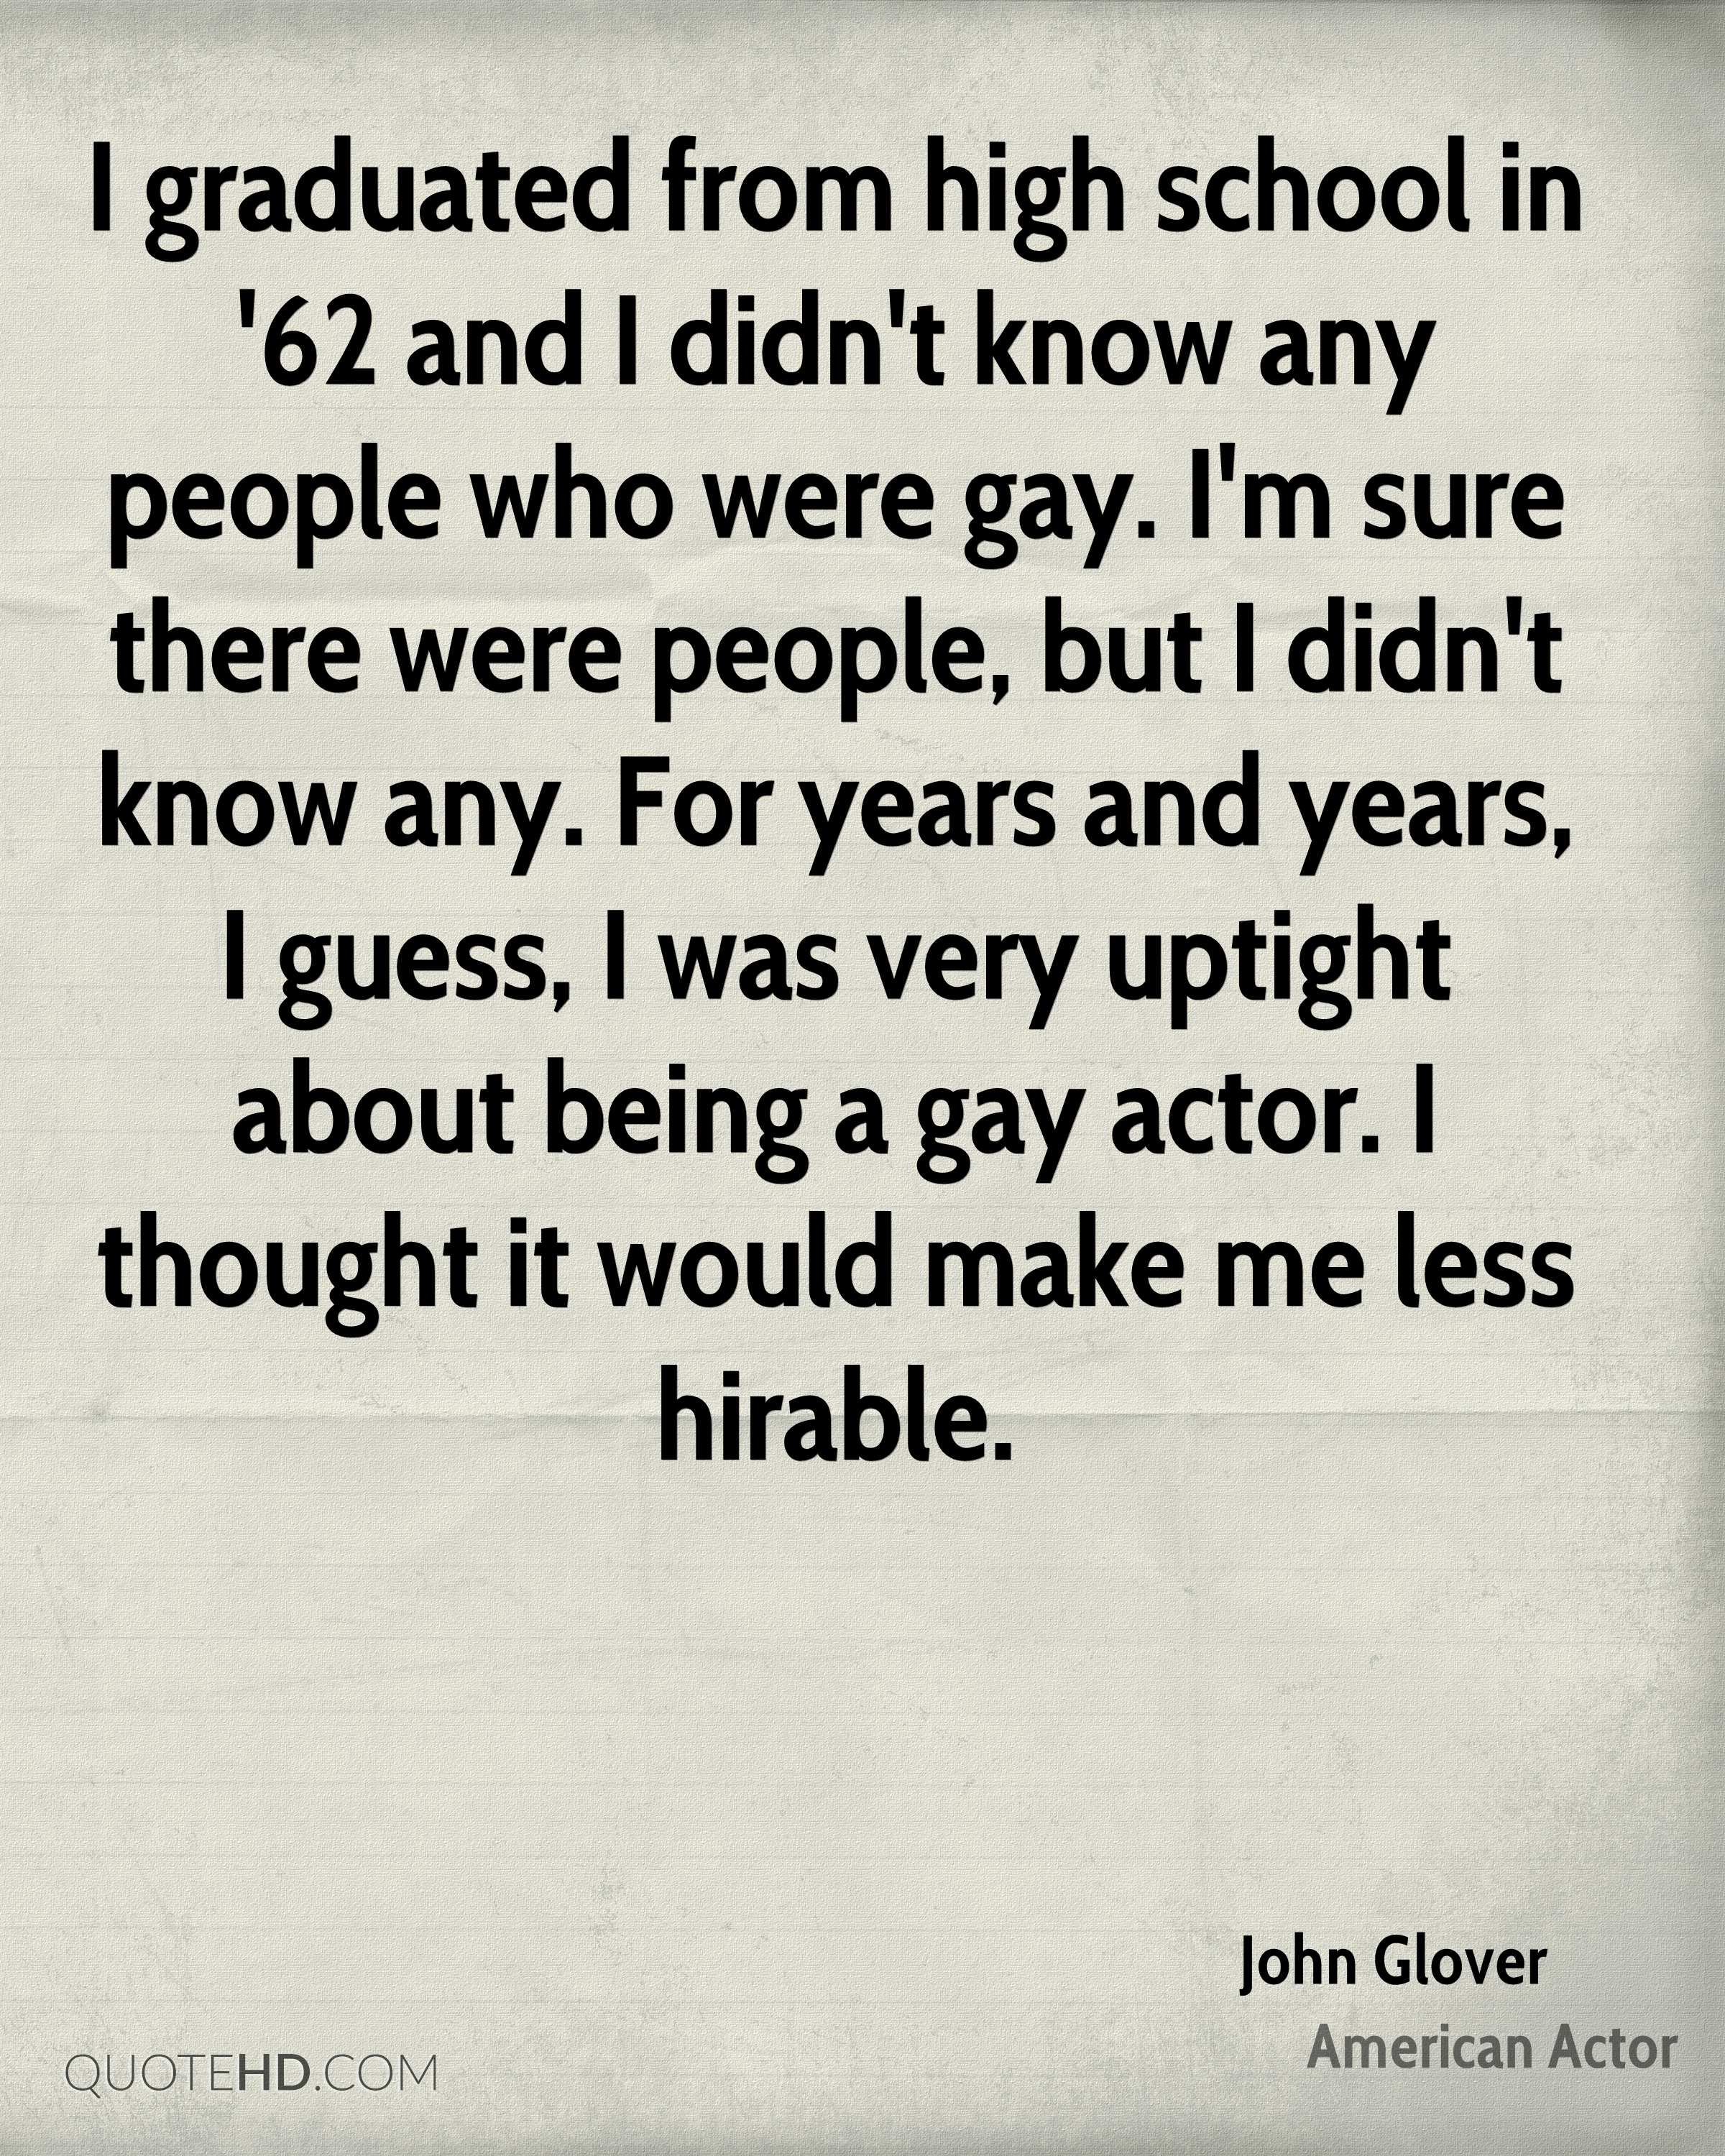 I graduated from high school in '62 and I didn't know any people who were gay. I'm sure there were people, but I didn't know any. For years and years, I guess, I was very uptight about being a gay actor. I thought it would make me less hirable.